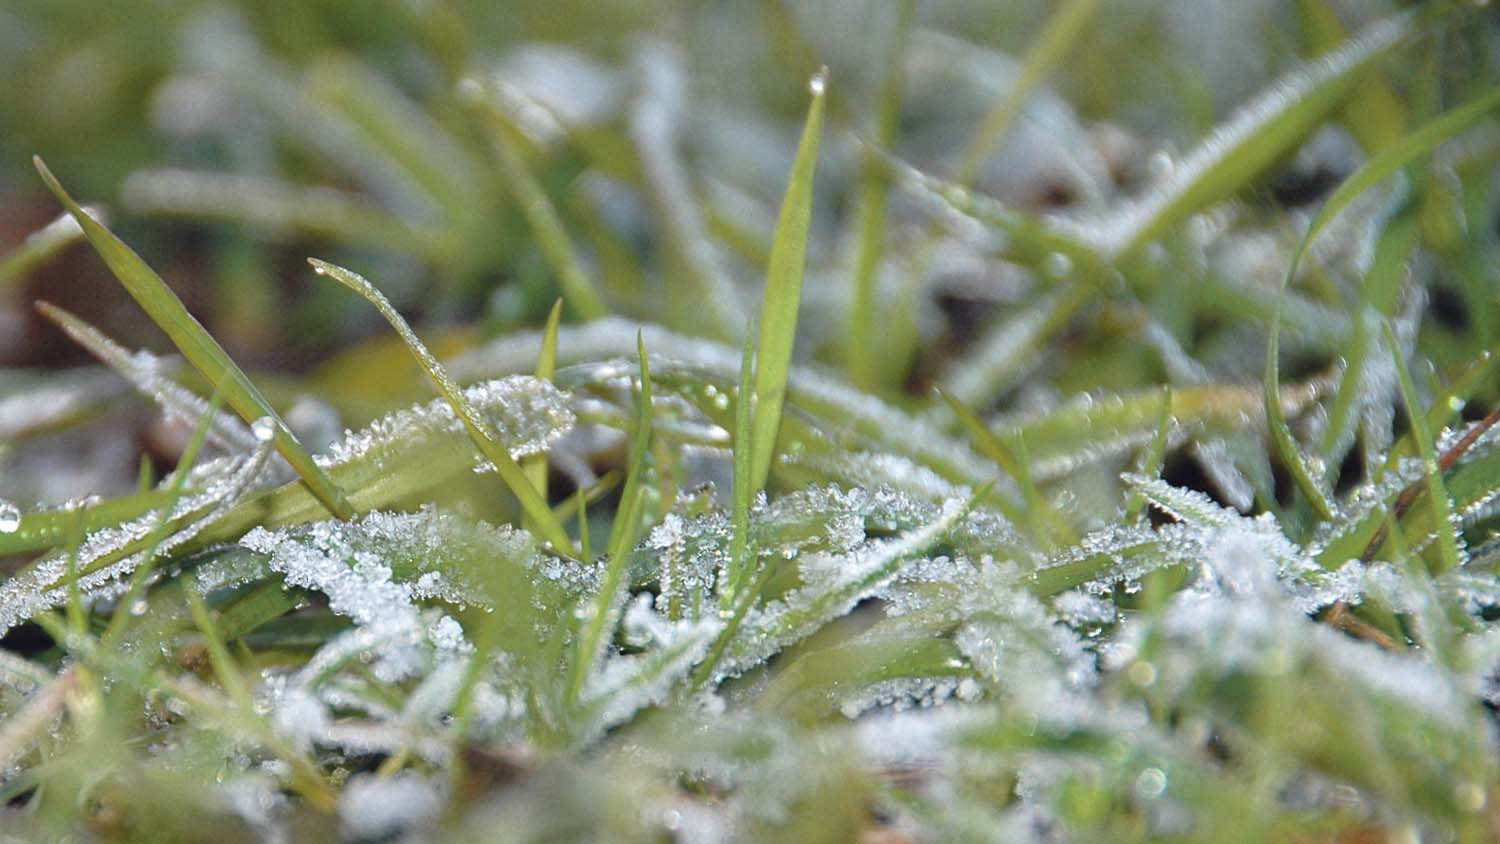 There is a threat of widespread frost during the nights